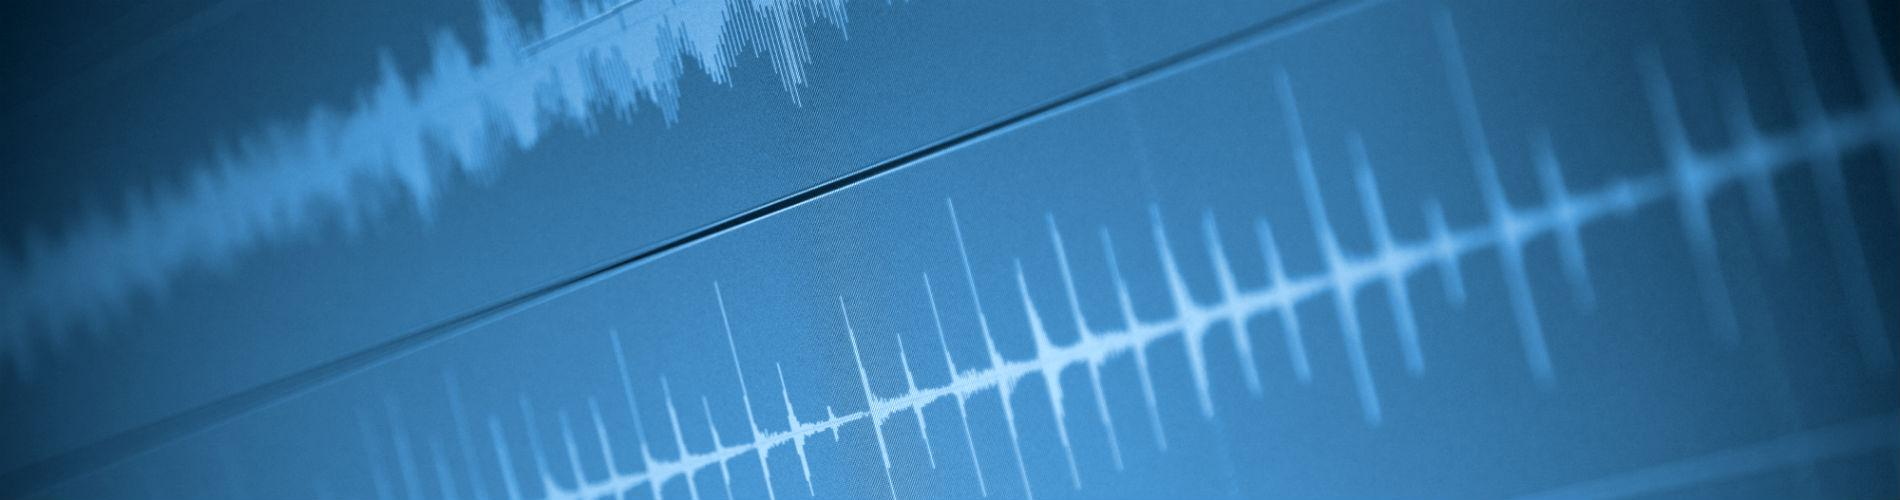 Graphic rendering of sound waves.